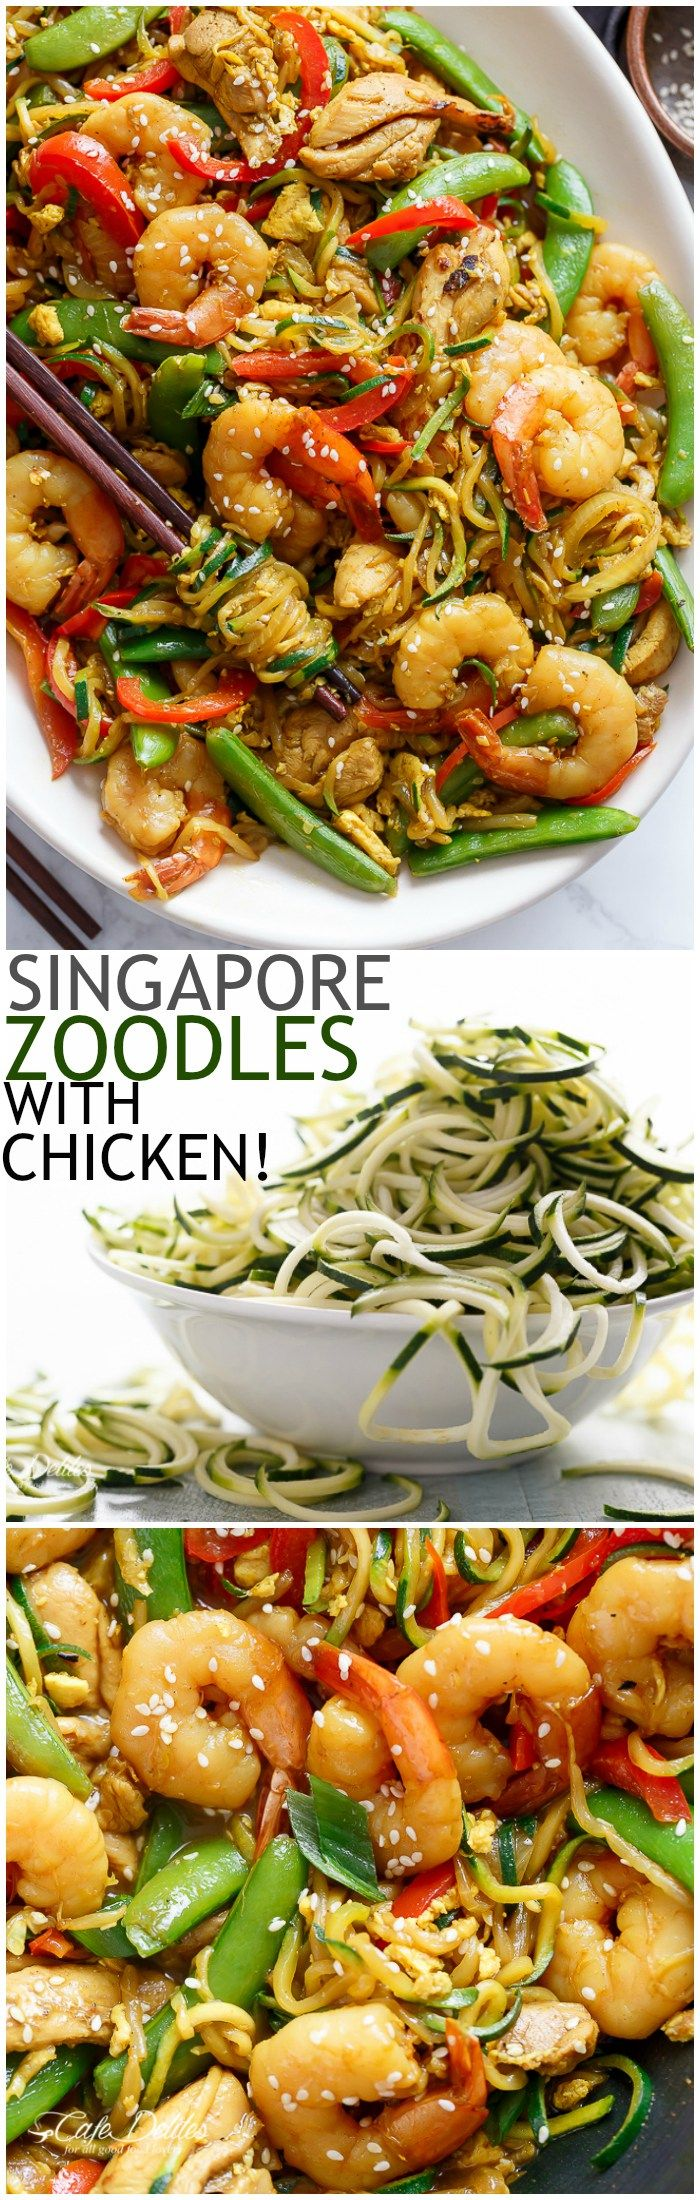 A twist on the classic Singapore Noodles -- same classic flavours only low carb and low calories with Zoodles!   http://cafedelites.com